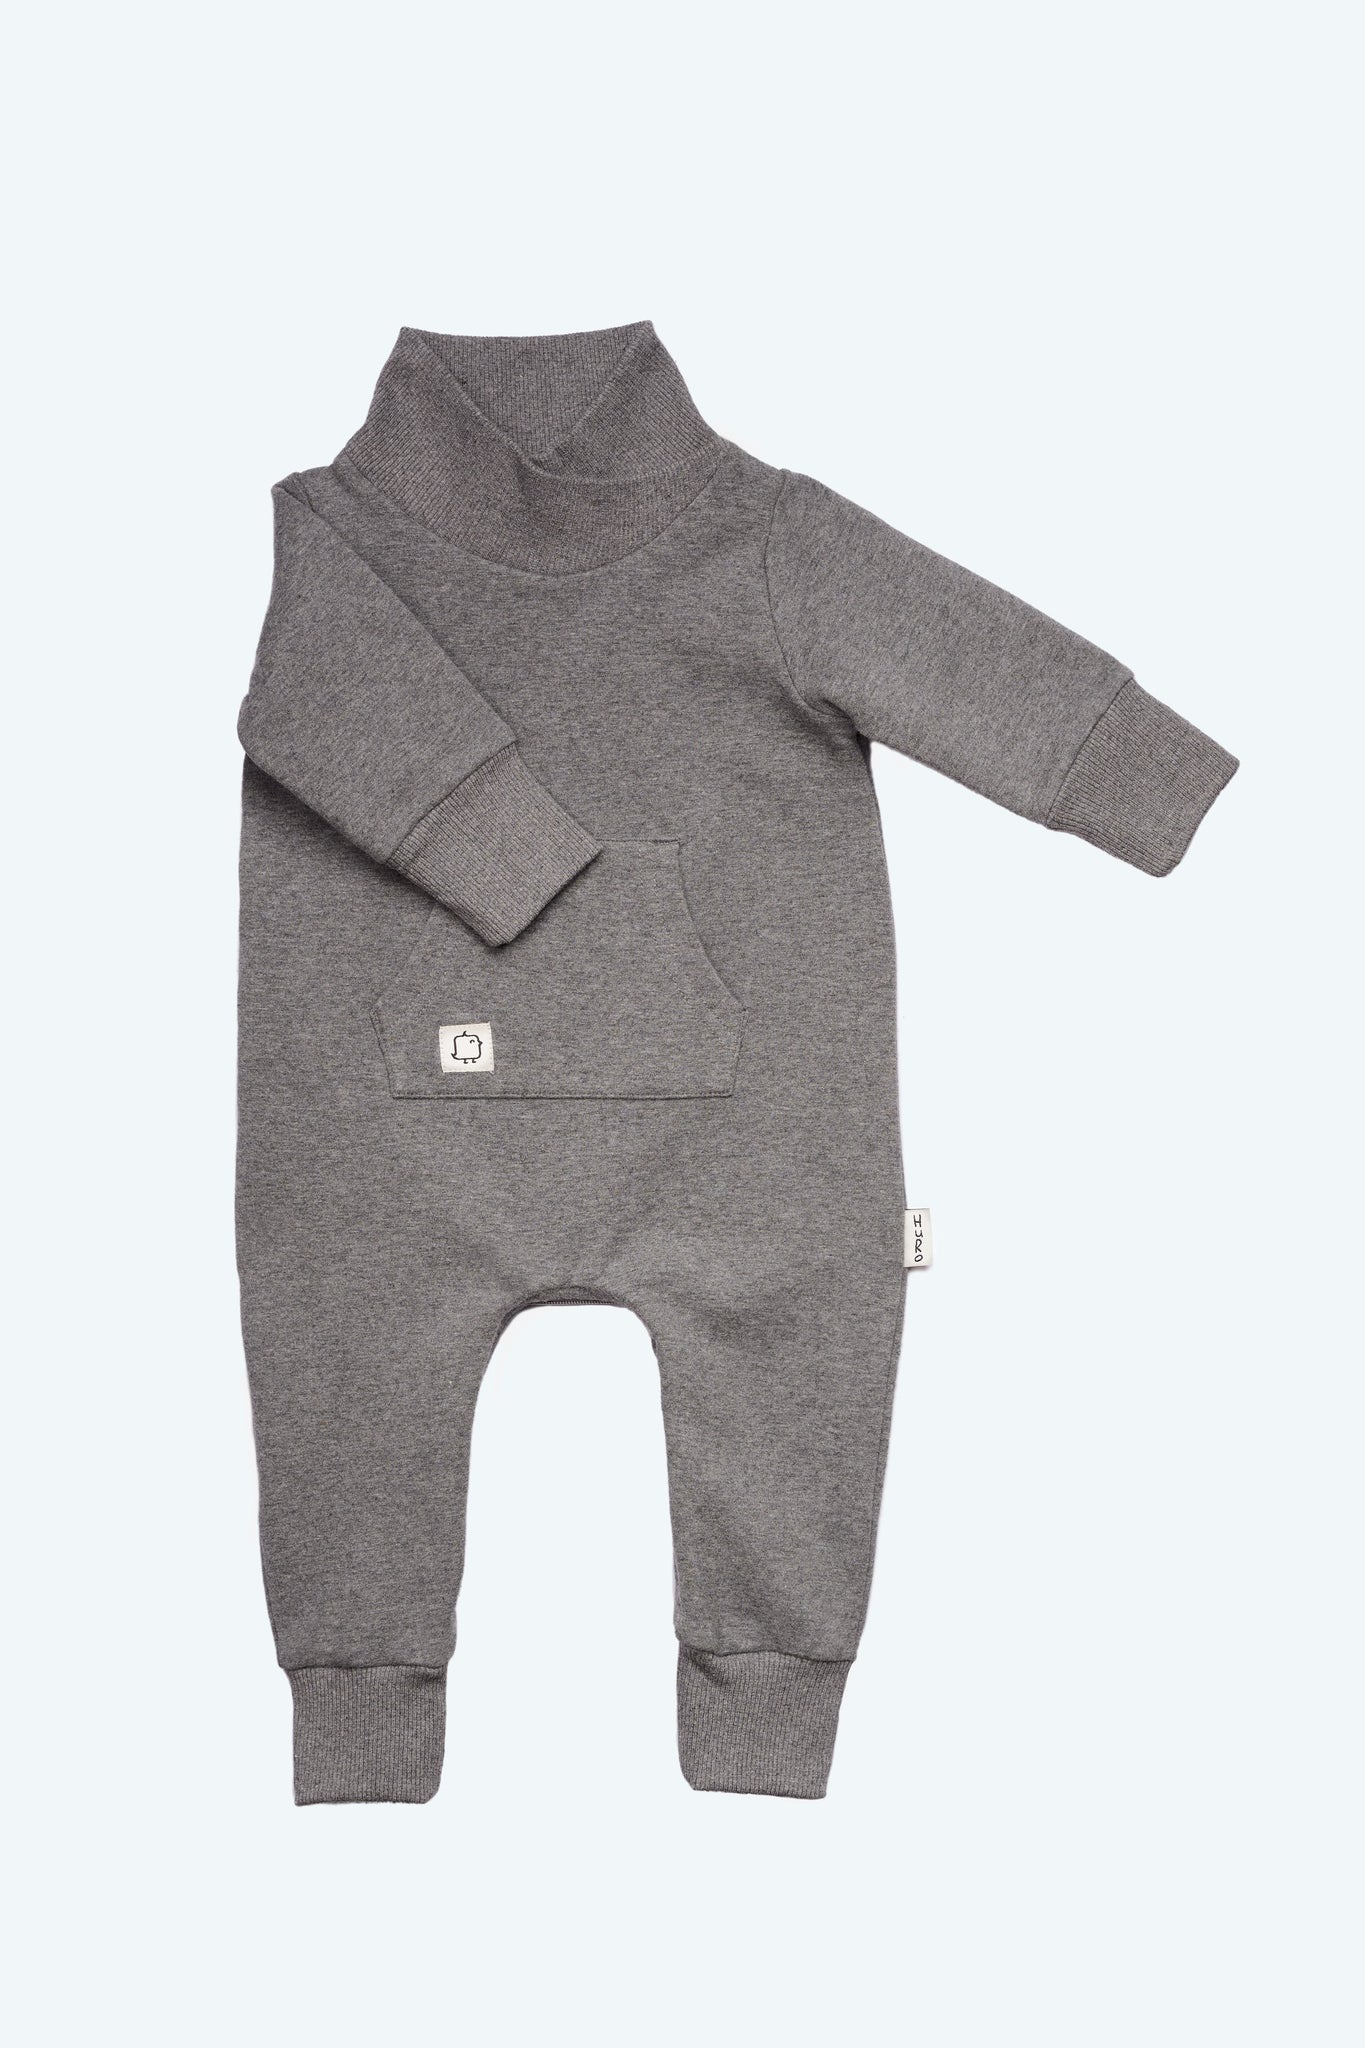 Turtle Suit - Stone - HuRo Kids Clothing